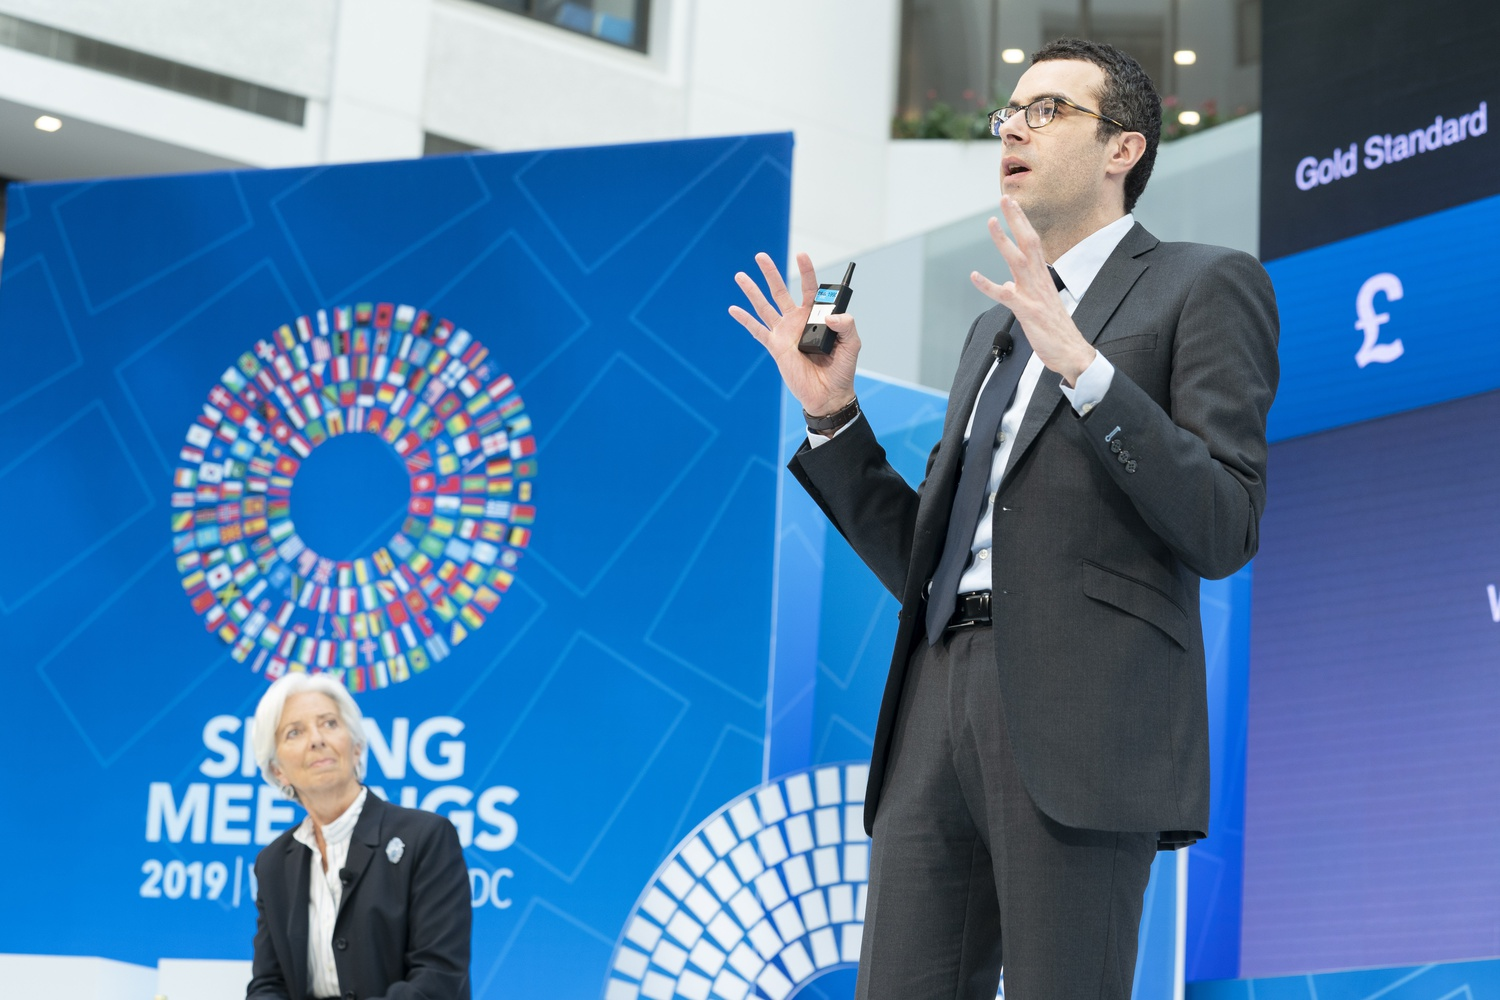 Harvard economics professor Emmanuel Farhi speaks at the 2019 IMF/World Bank Spring Meetings in Washington, D.C.